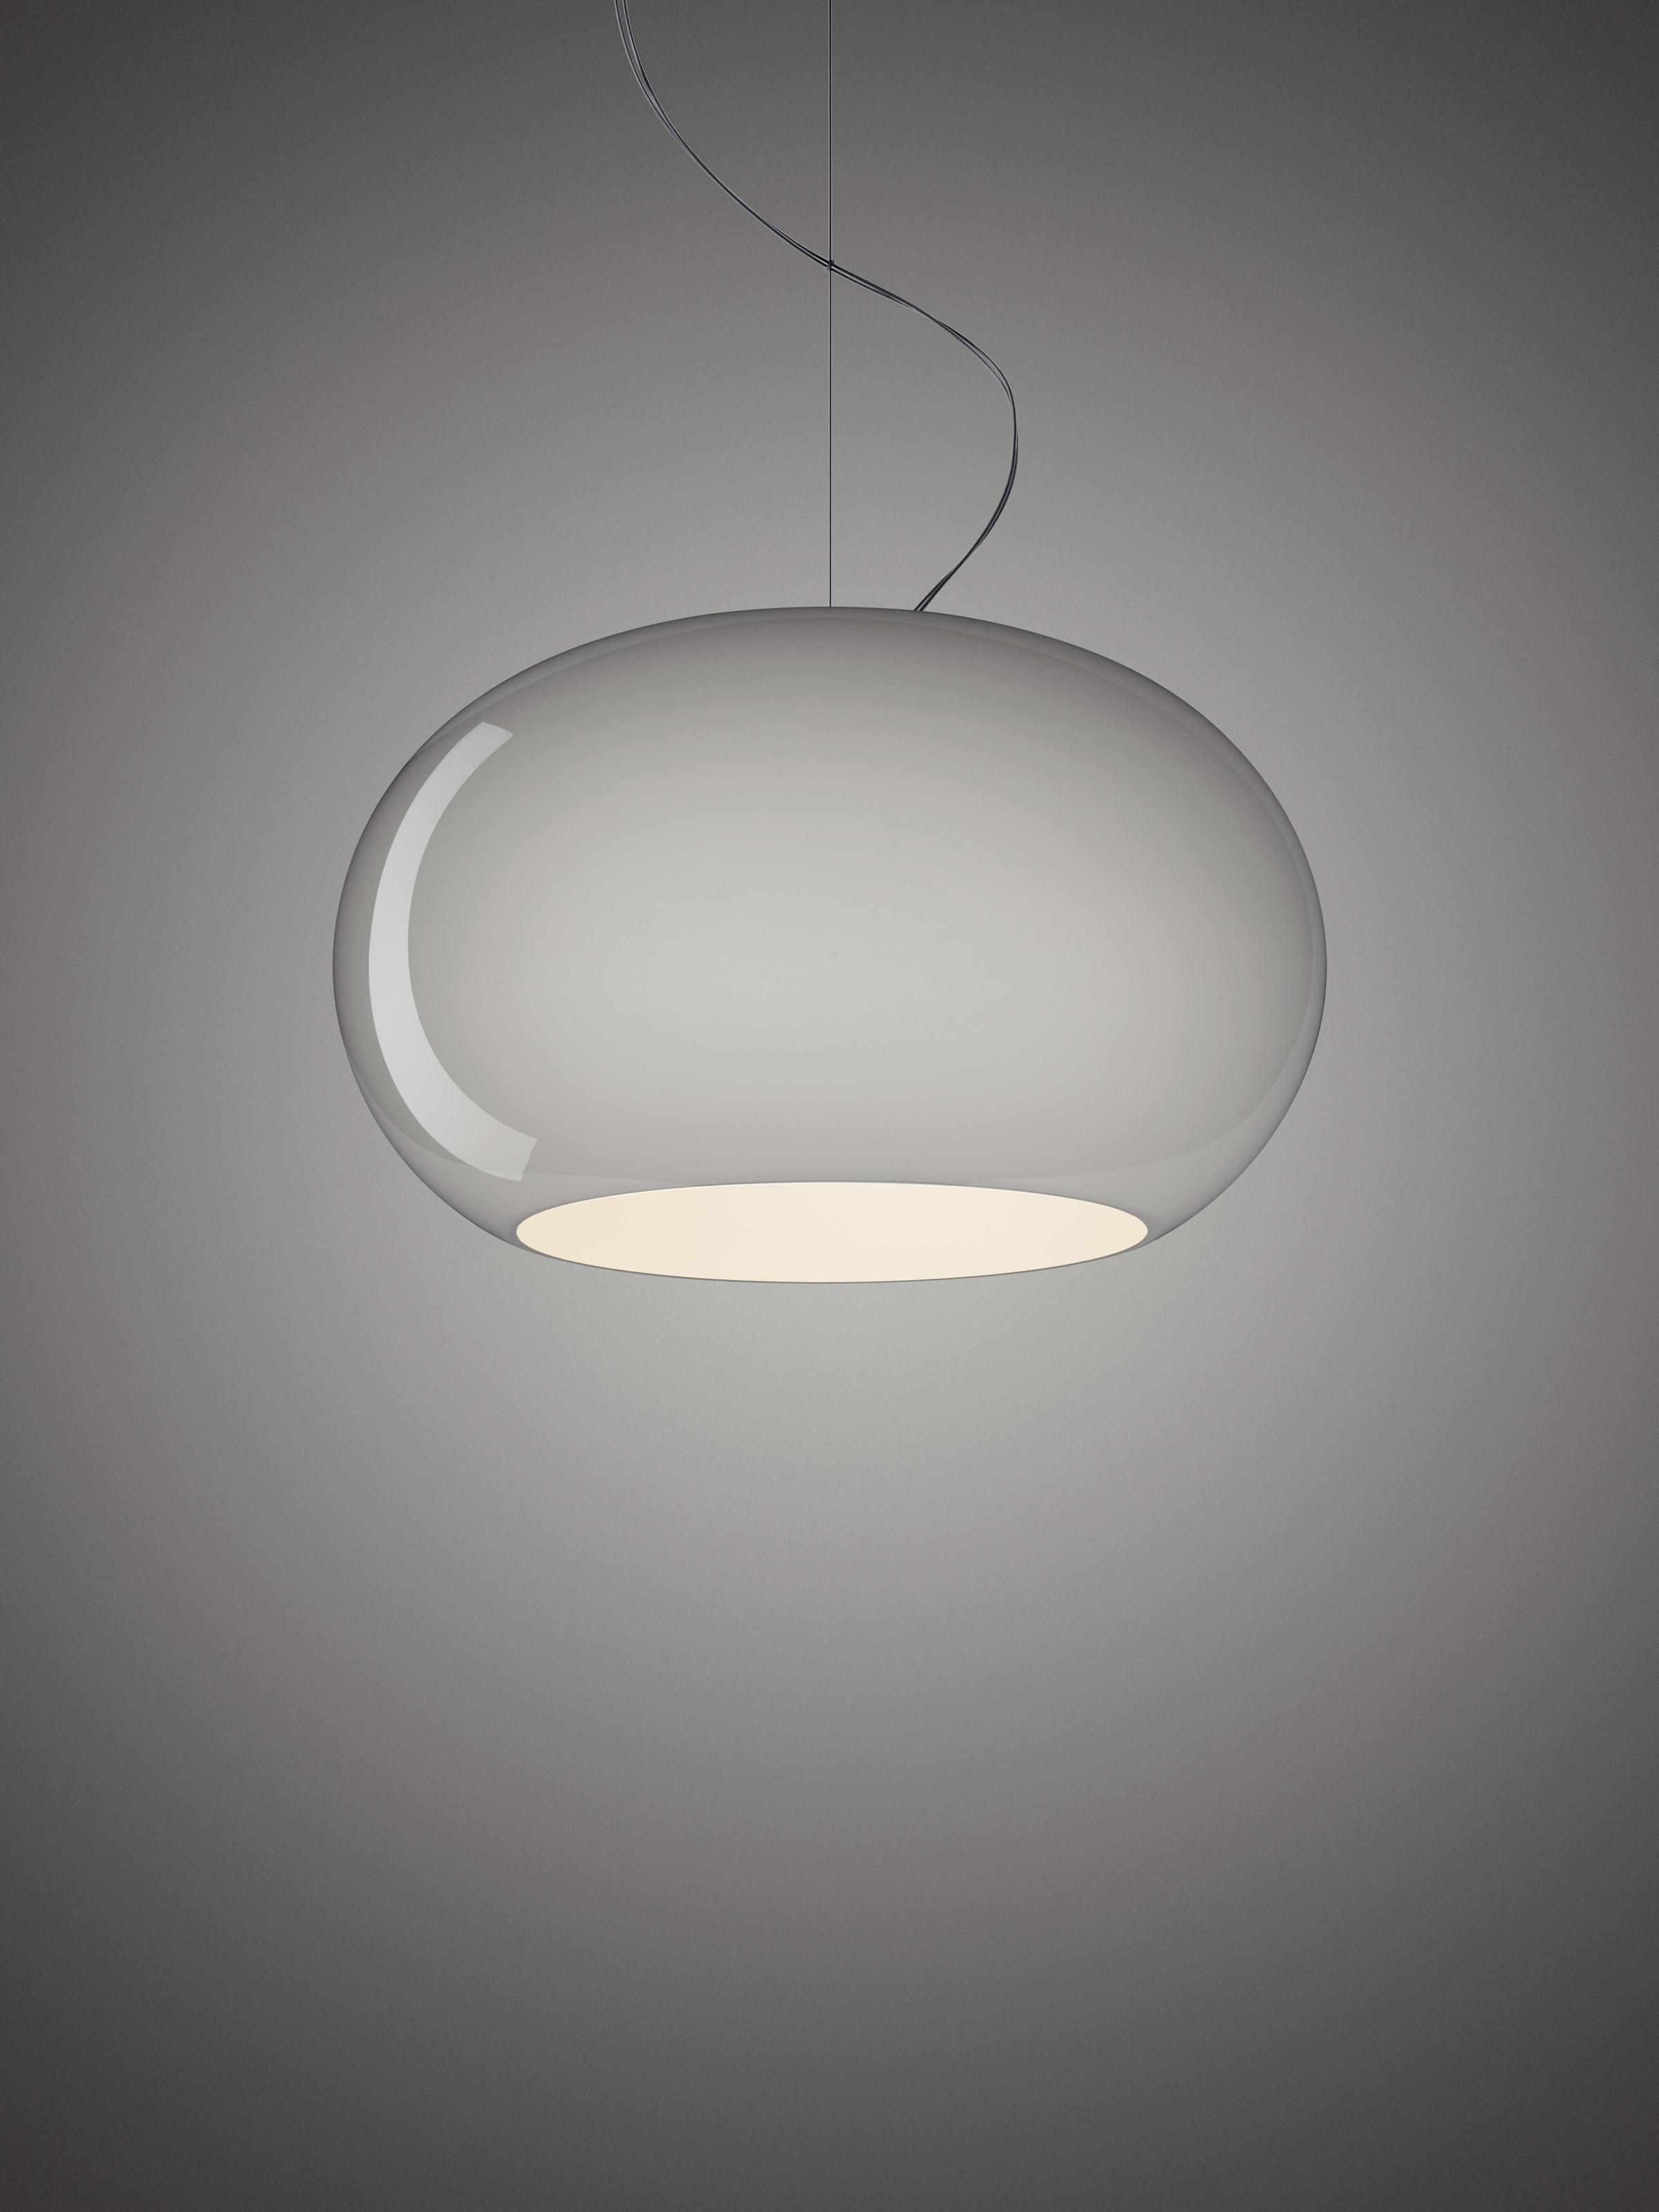 Buds 2 Suspension Lamp